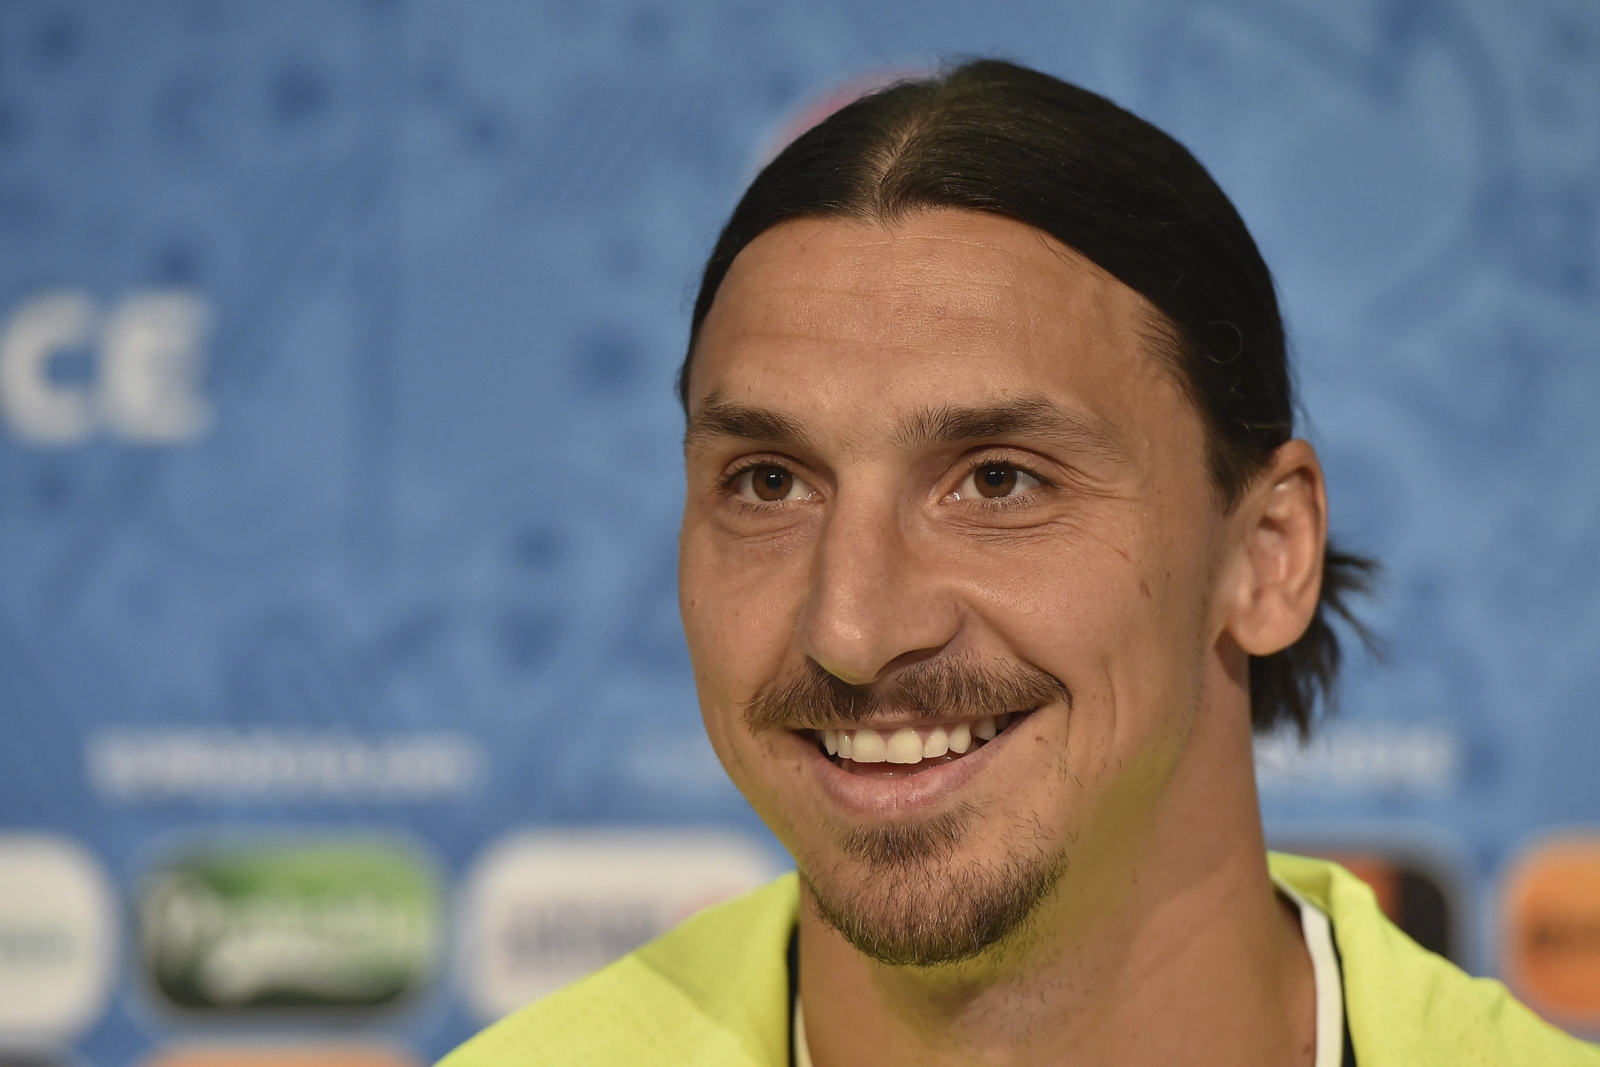 Zlatan Ibrahimovic to Manchester United: Transfer of controversial